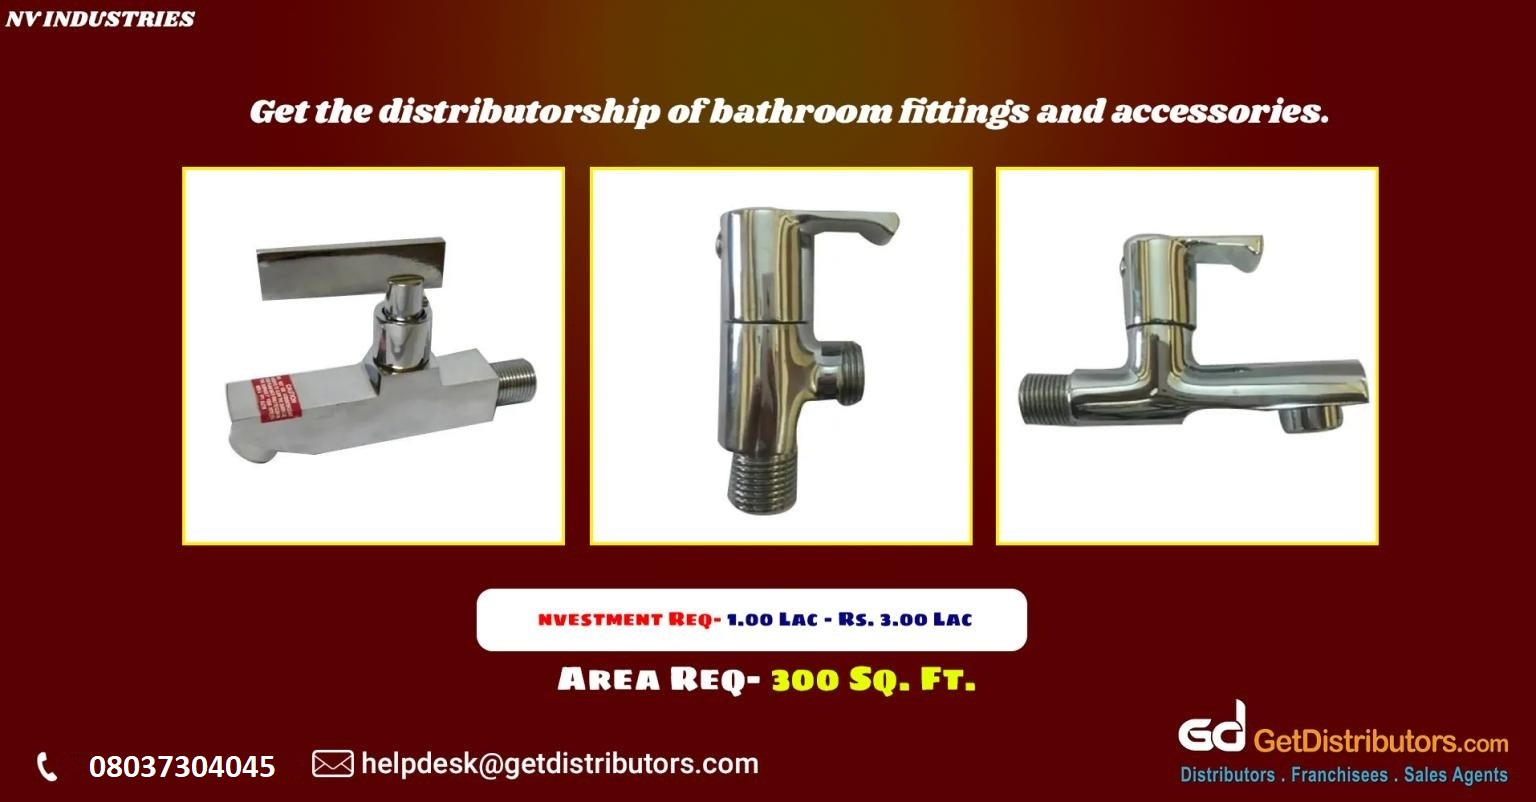 Top grade bathroom fittings and accessories for distribution